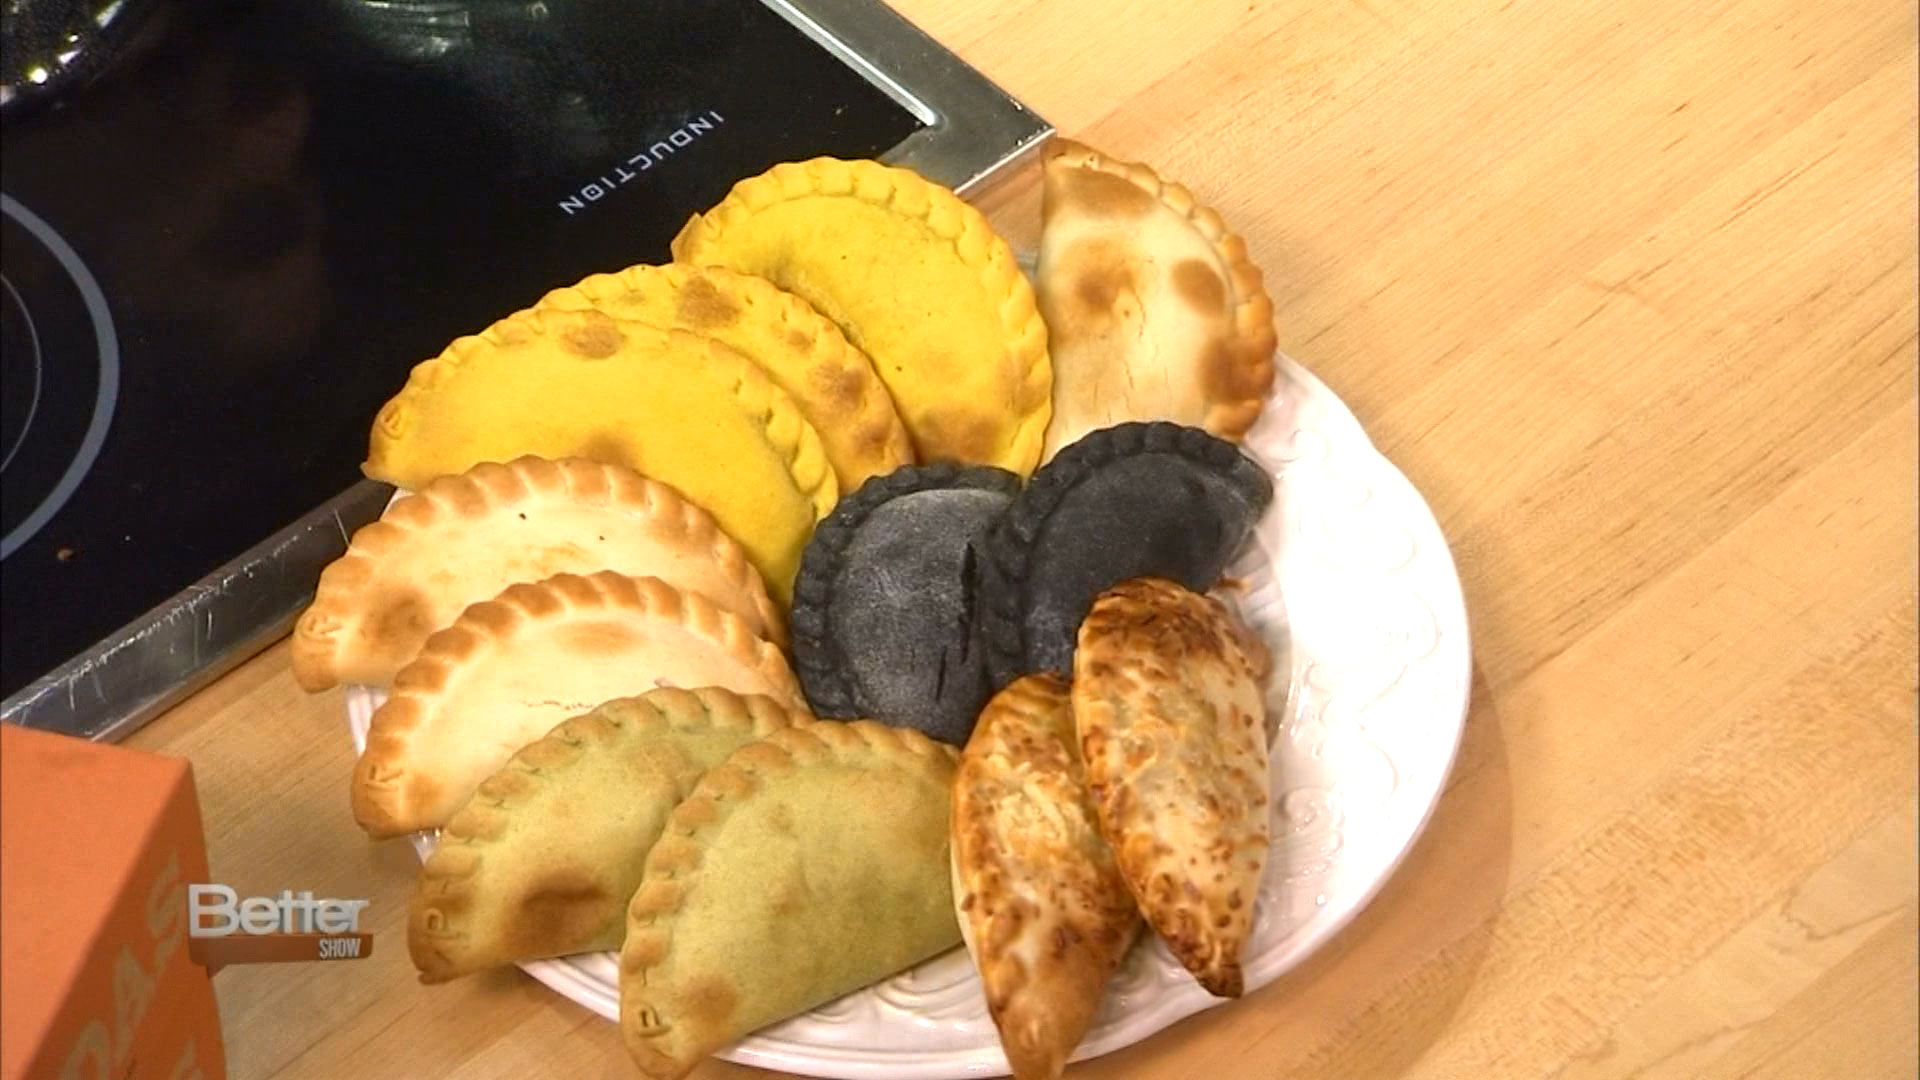 Vendy Award Winner Ariel Barbouth's Argentinian Empanada Recipe